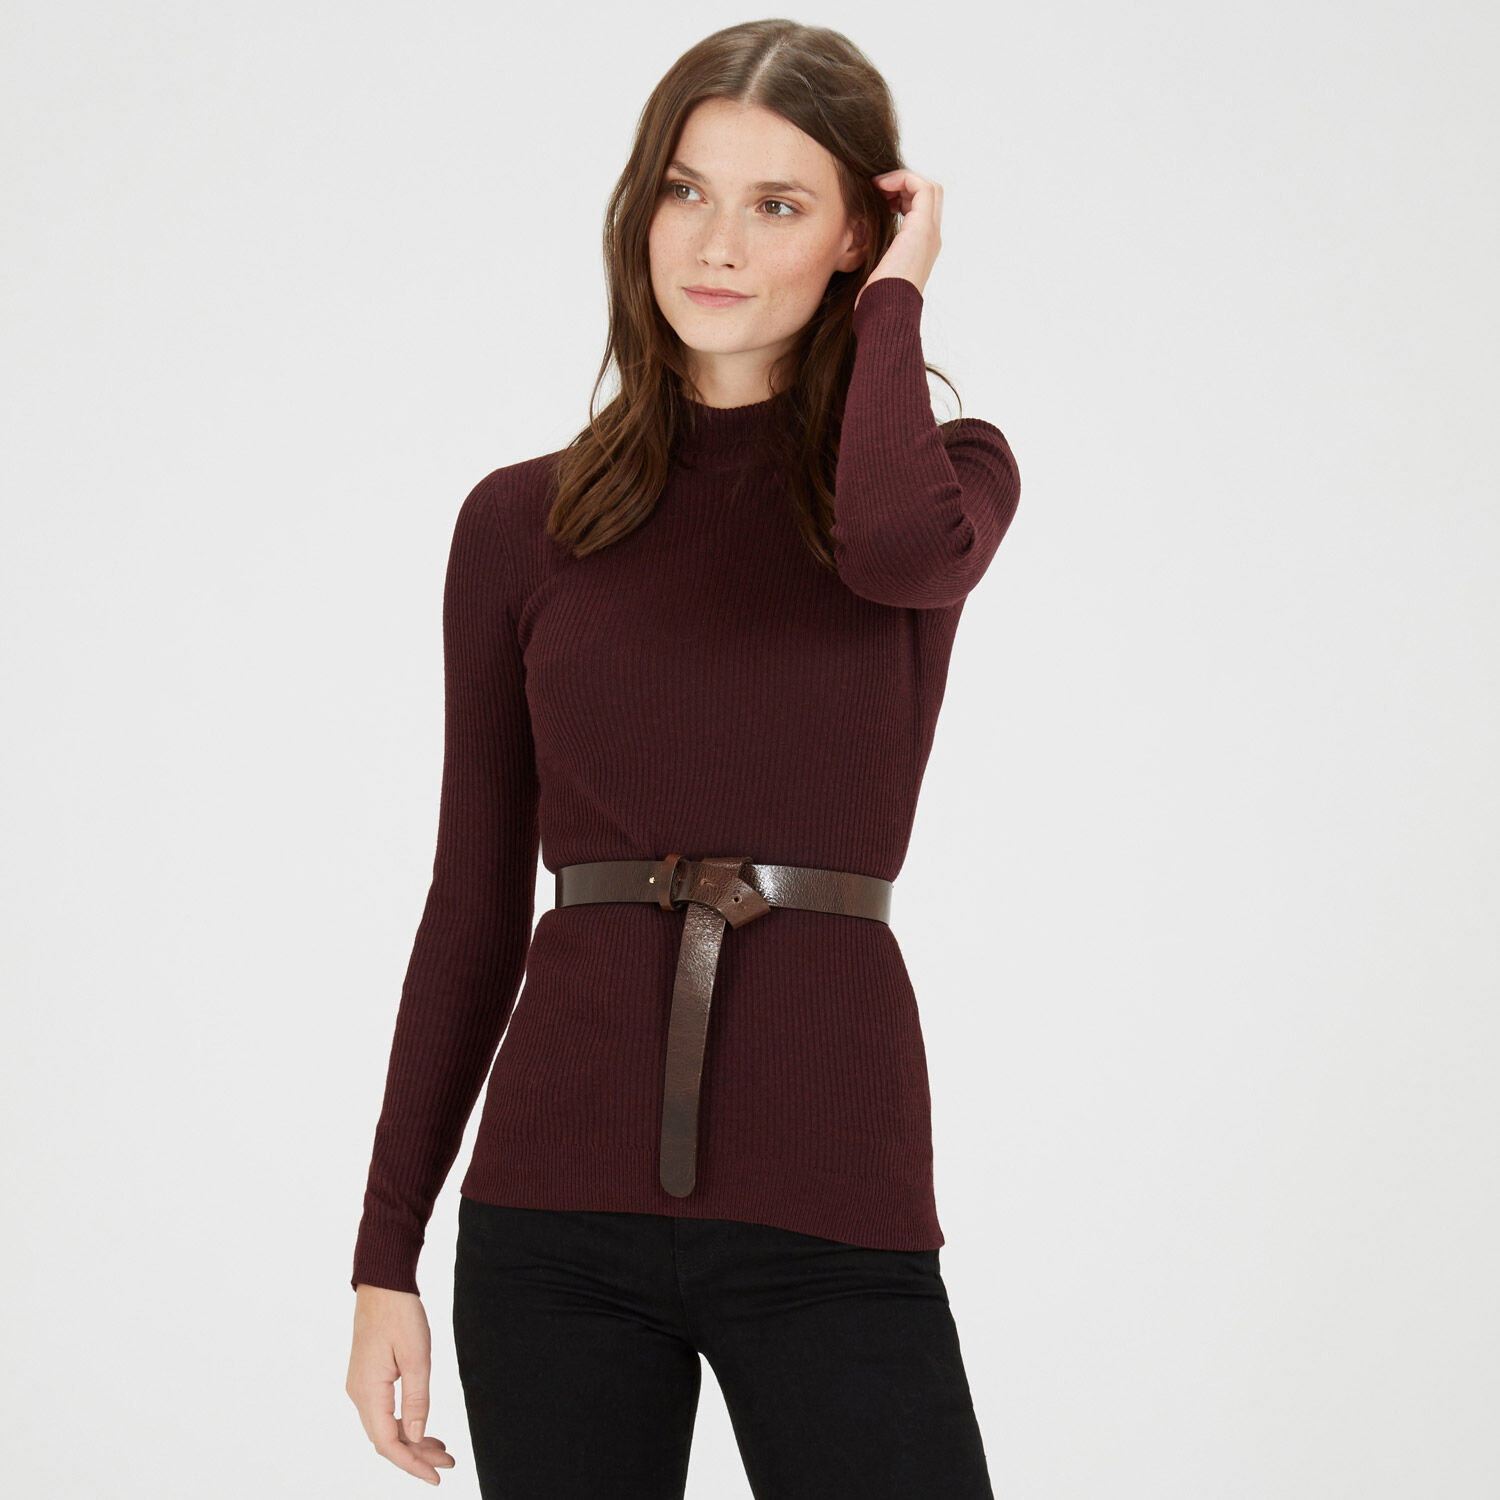 Warehouse, KNOTTED LEATHER WAIST BELT Brown 1